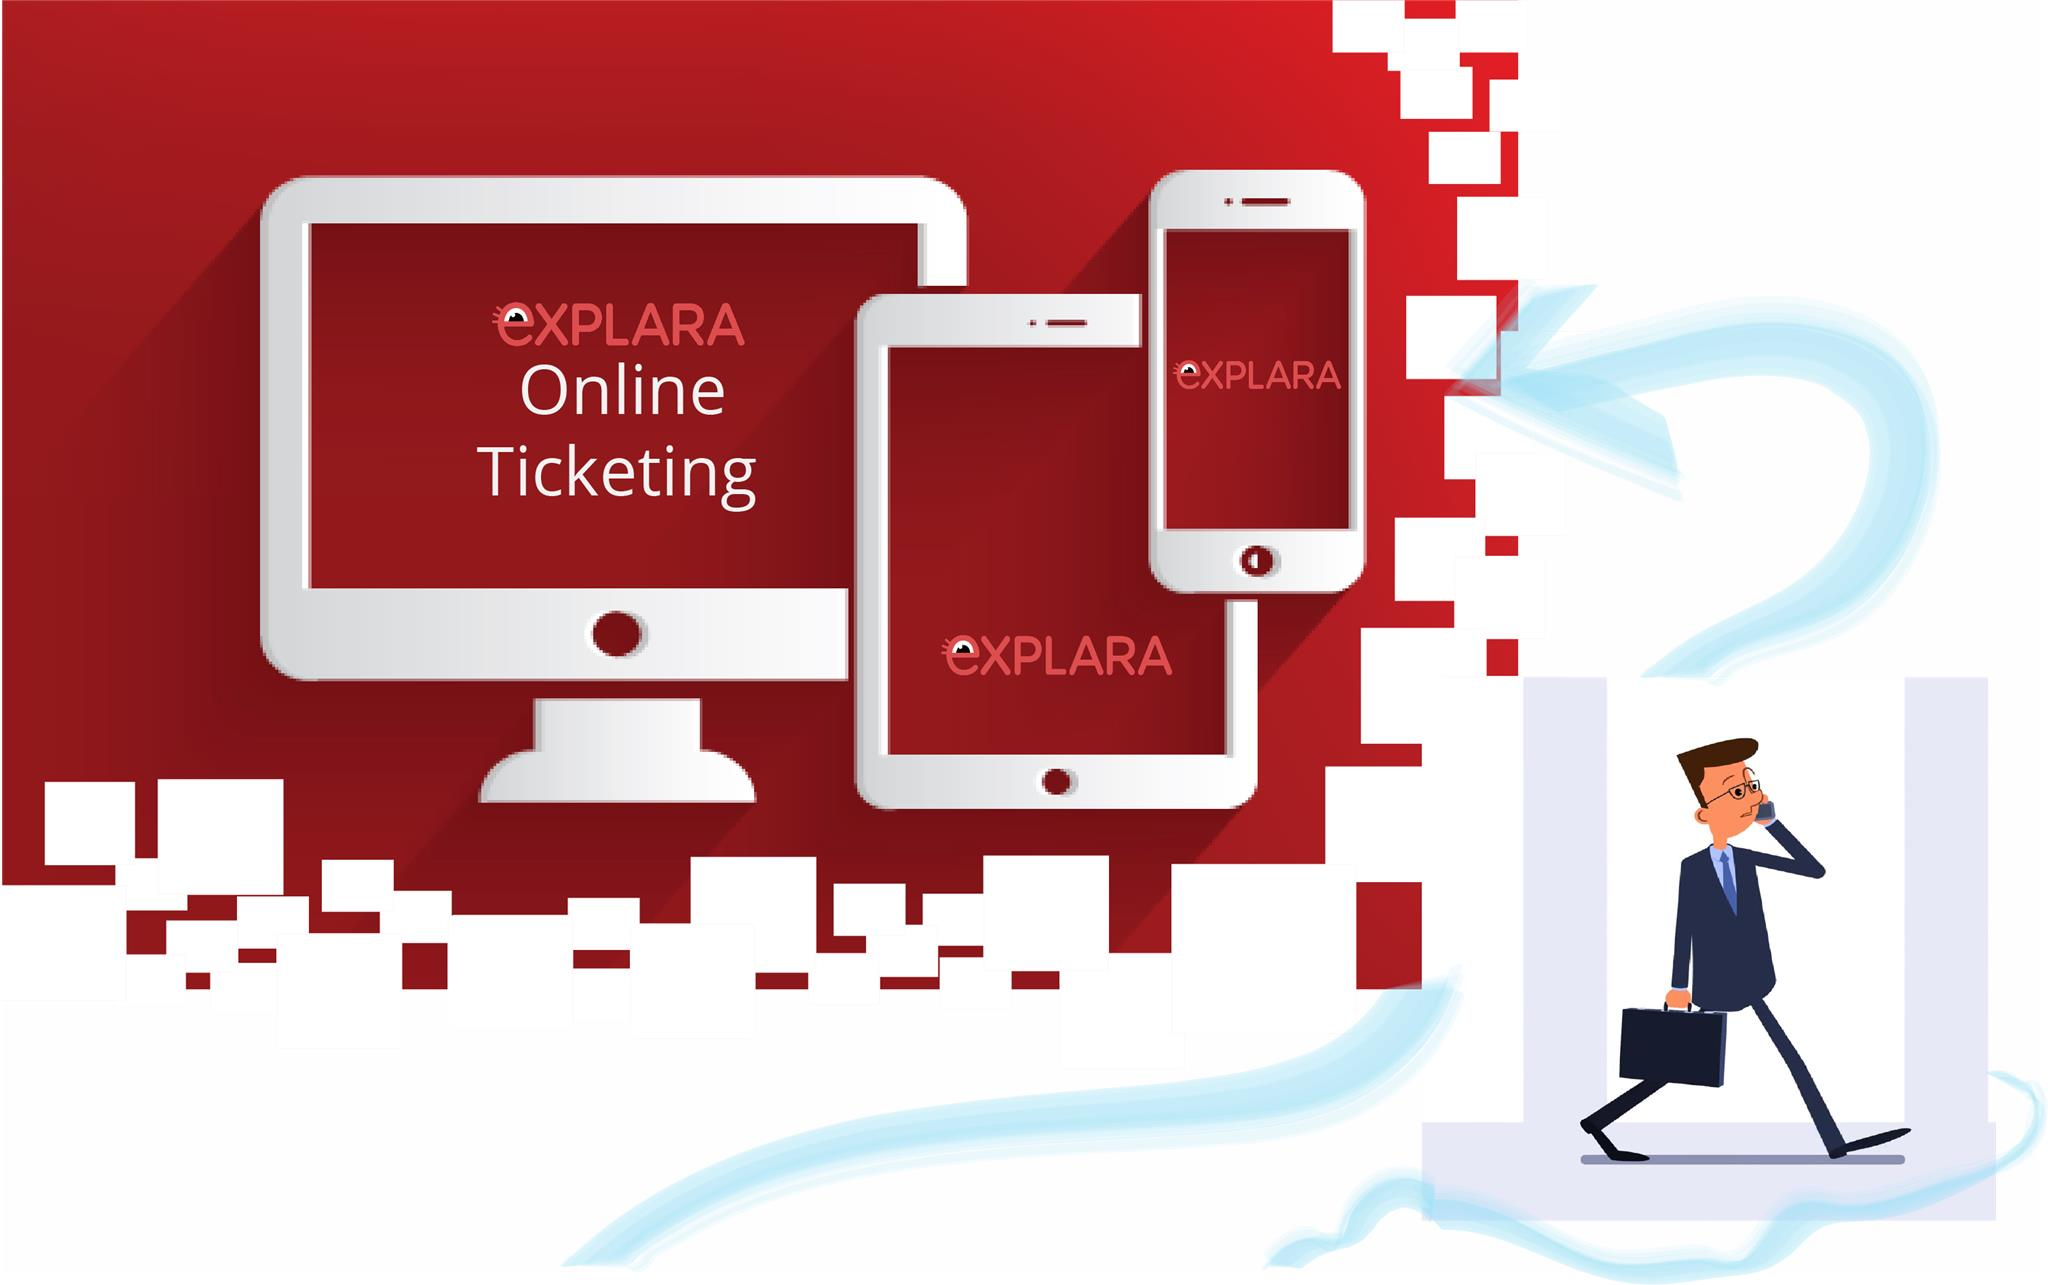 Shift from offline ticketing to online ticketing